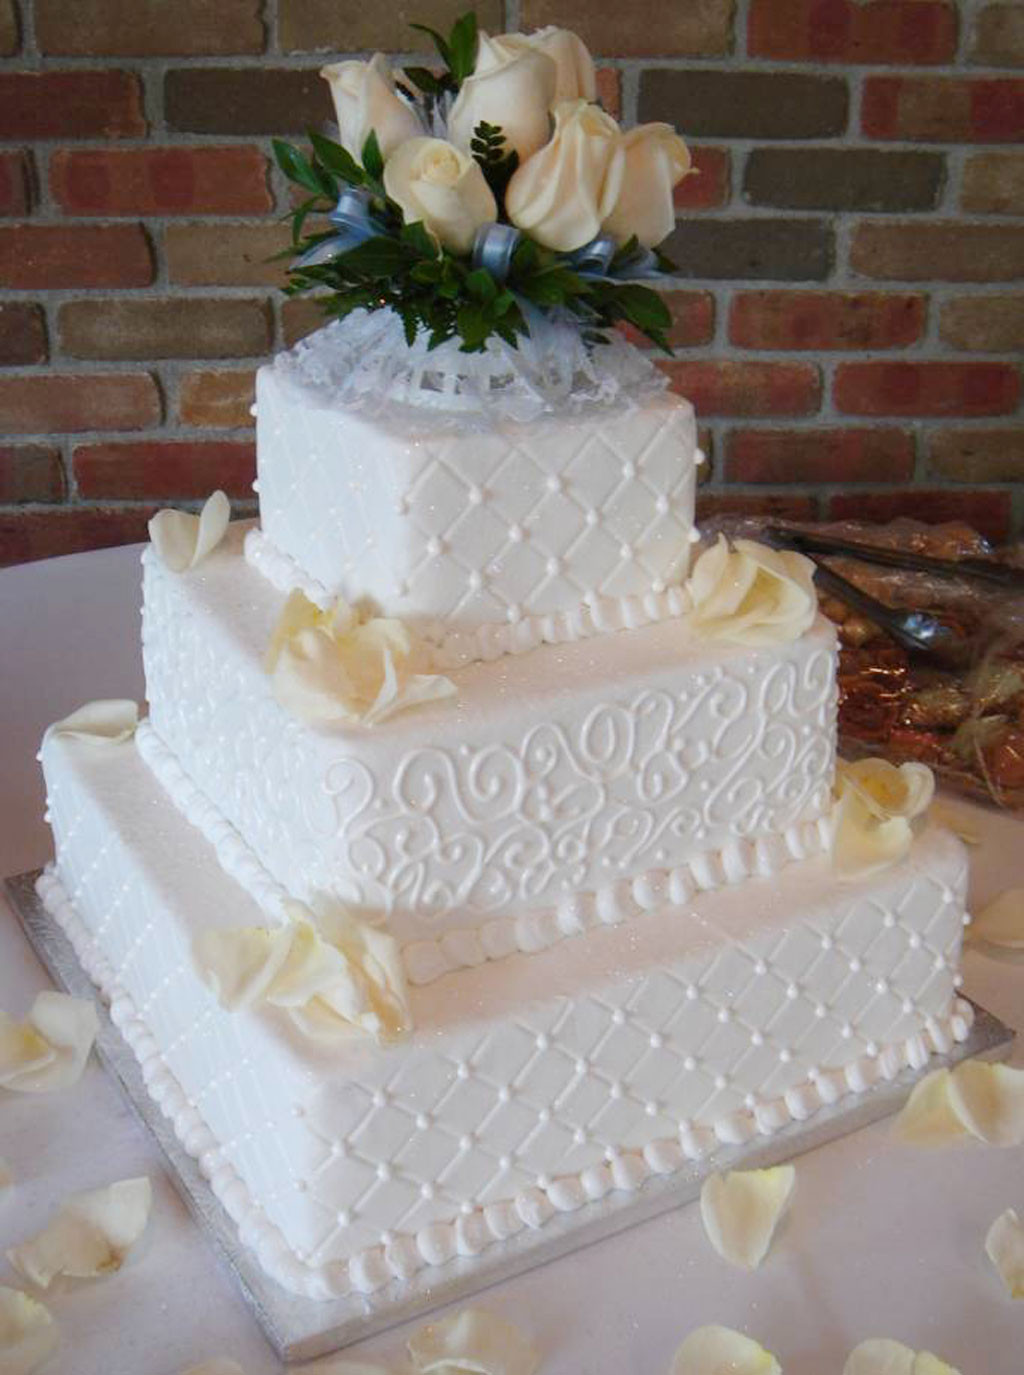 Icing Wedding Cakes  Buttercream Icing Wedding Cakes Wedding Cake Cake Ideas